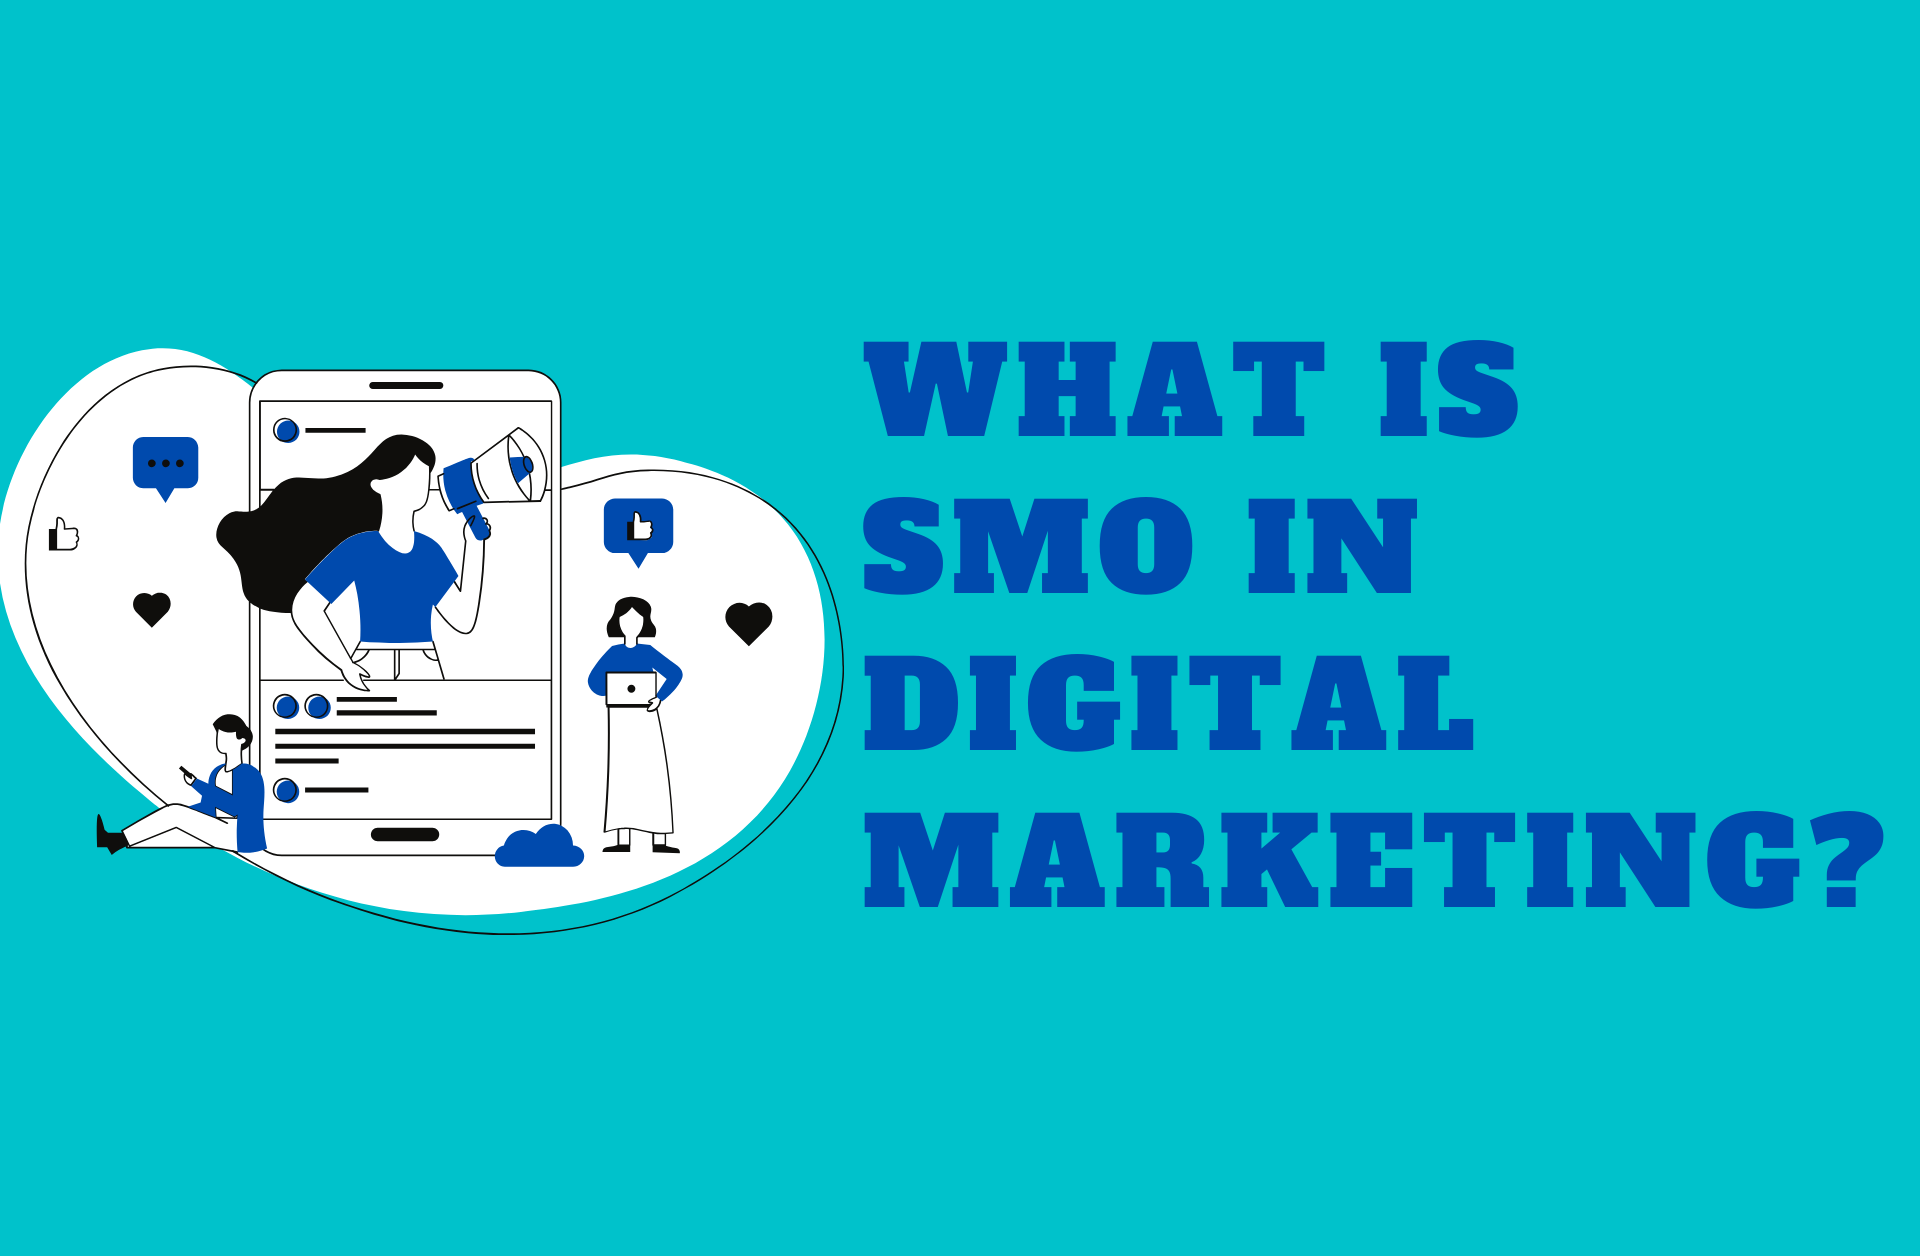 What is SMO in Digital Marketing?